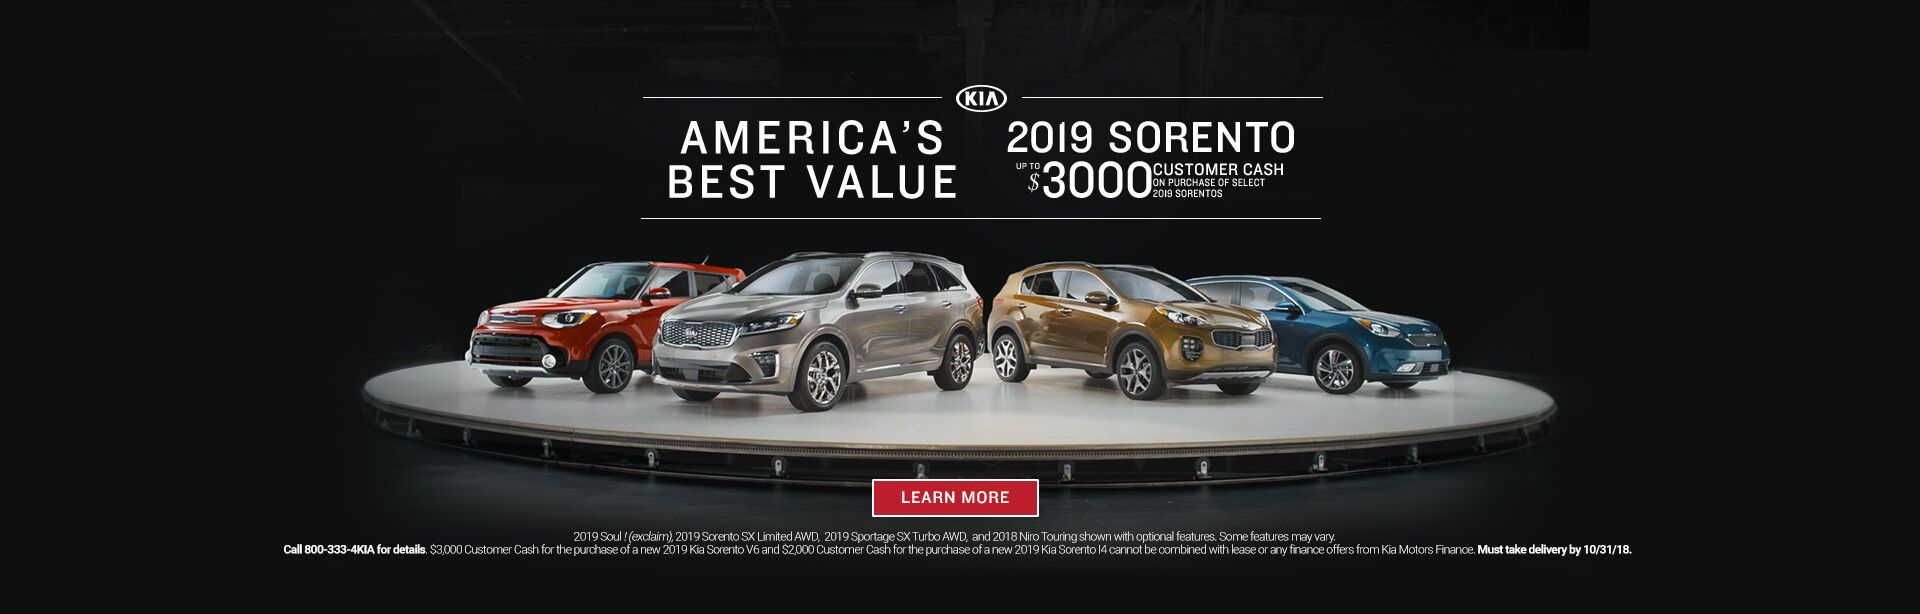 October Sorento Customer Cash